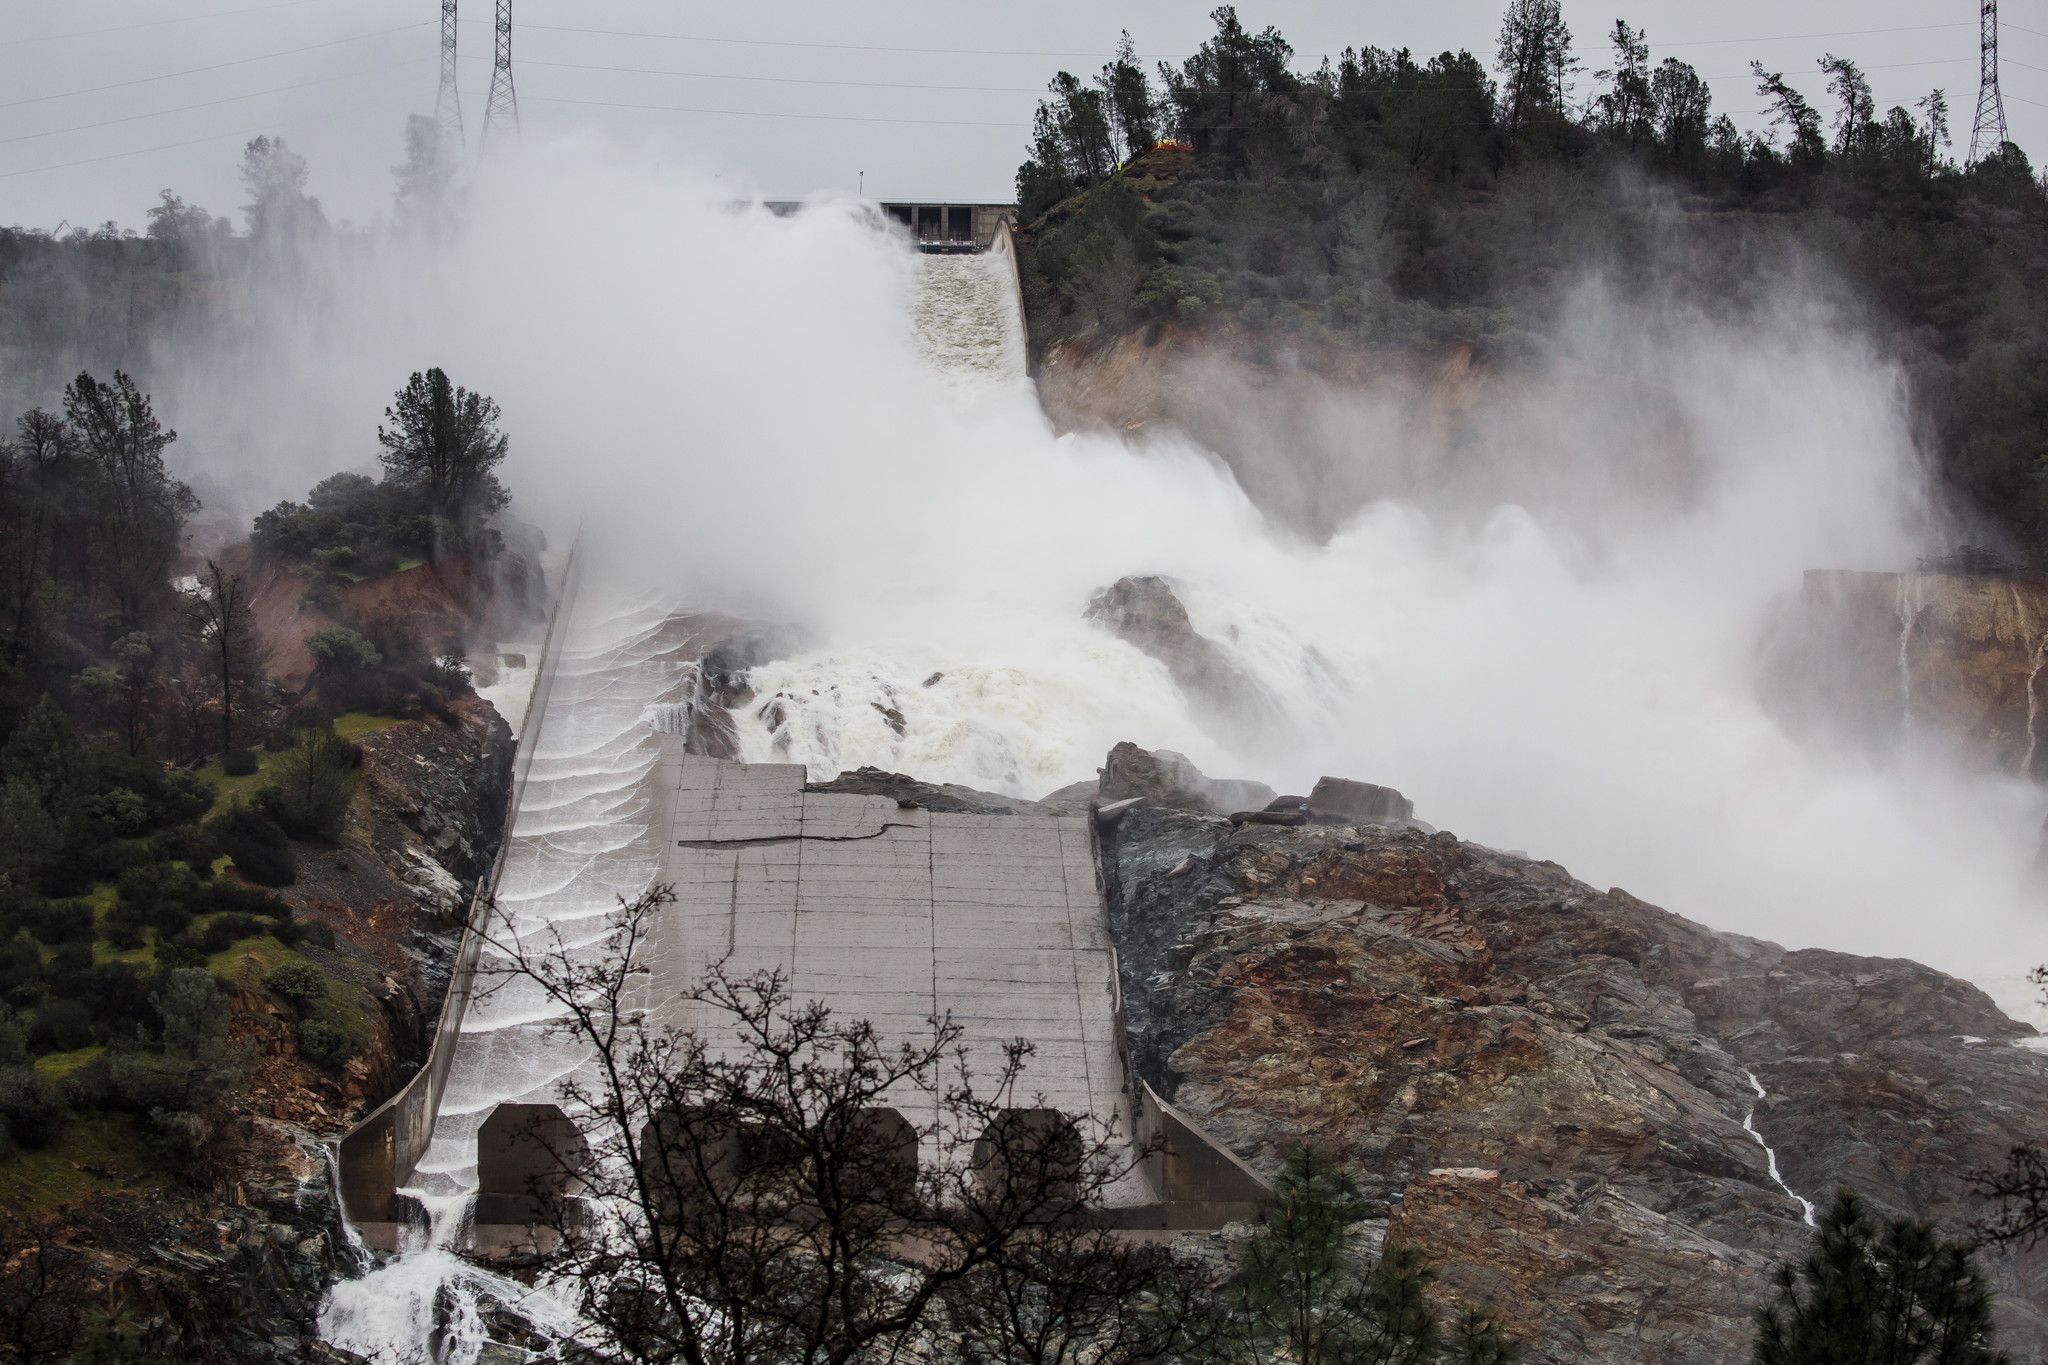 Water flow is barely flowing down the main spillway in Oroville on on Feb. 19 days after the spillway crumbled and an emergency spillway nearly failed.